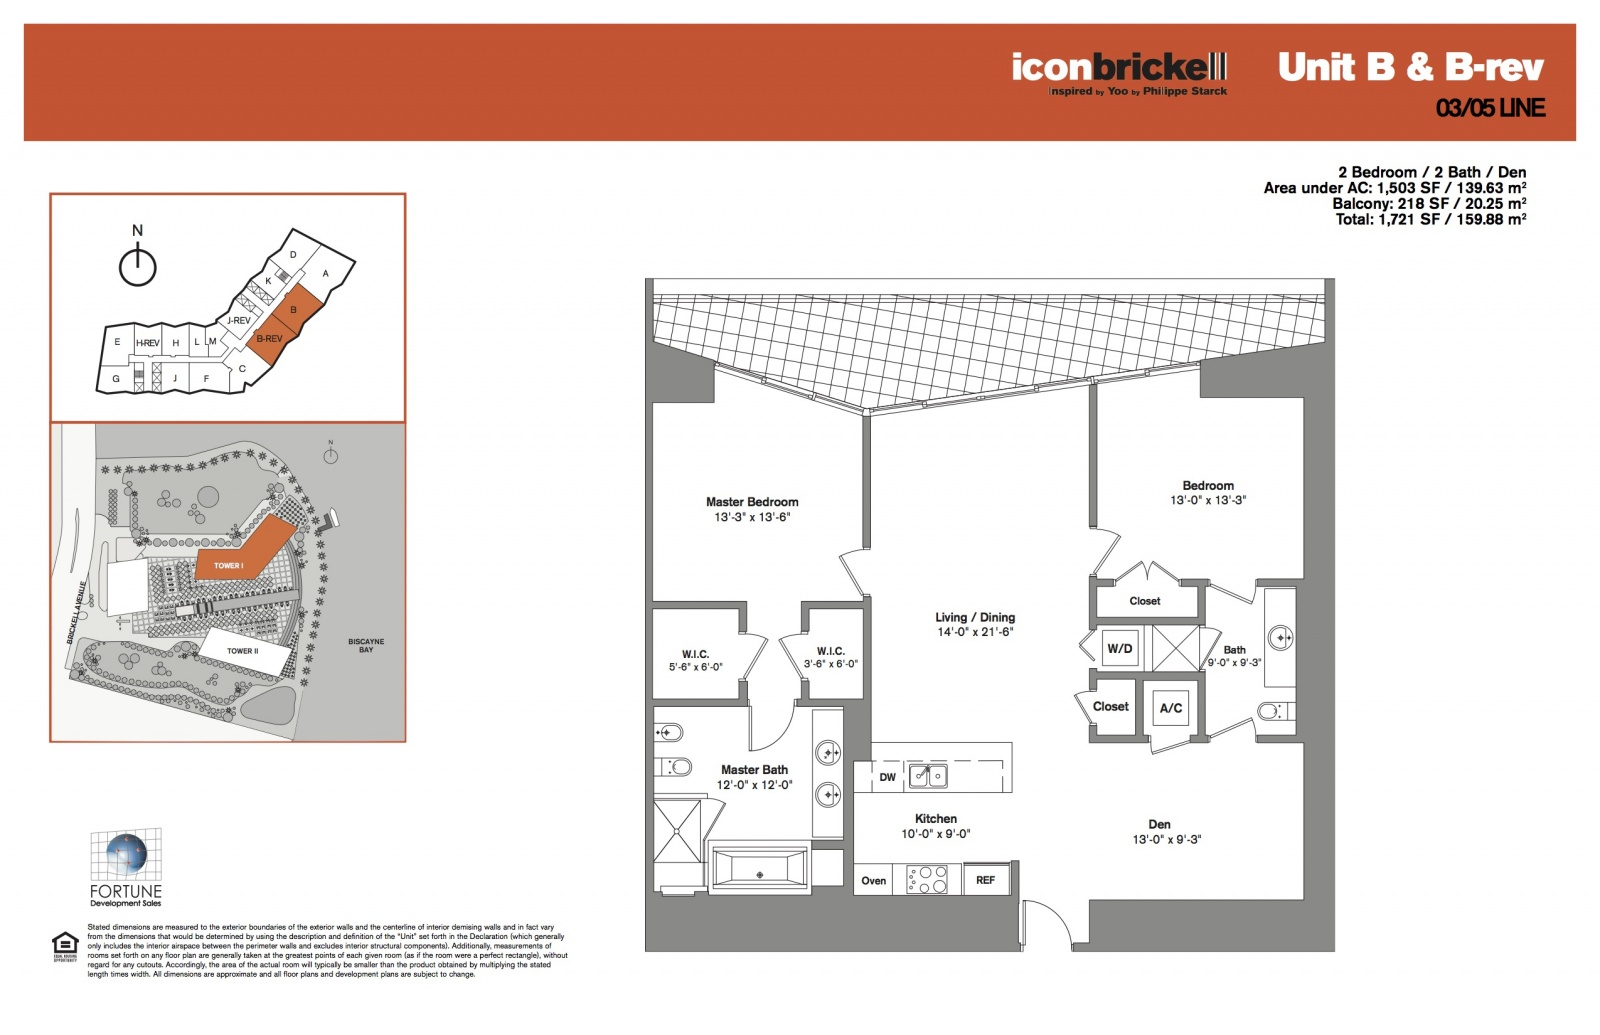 Icon Brickell One, lines 03-05 floor plan